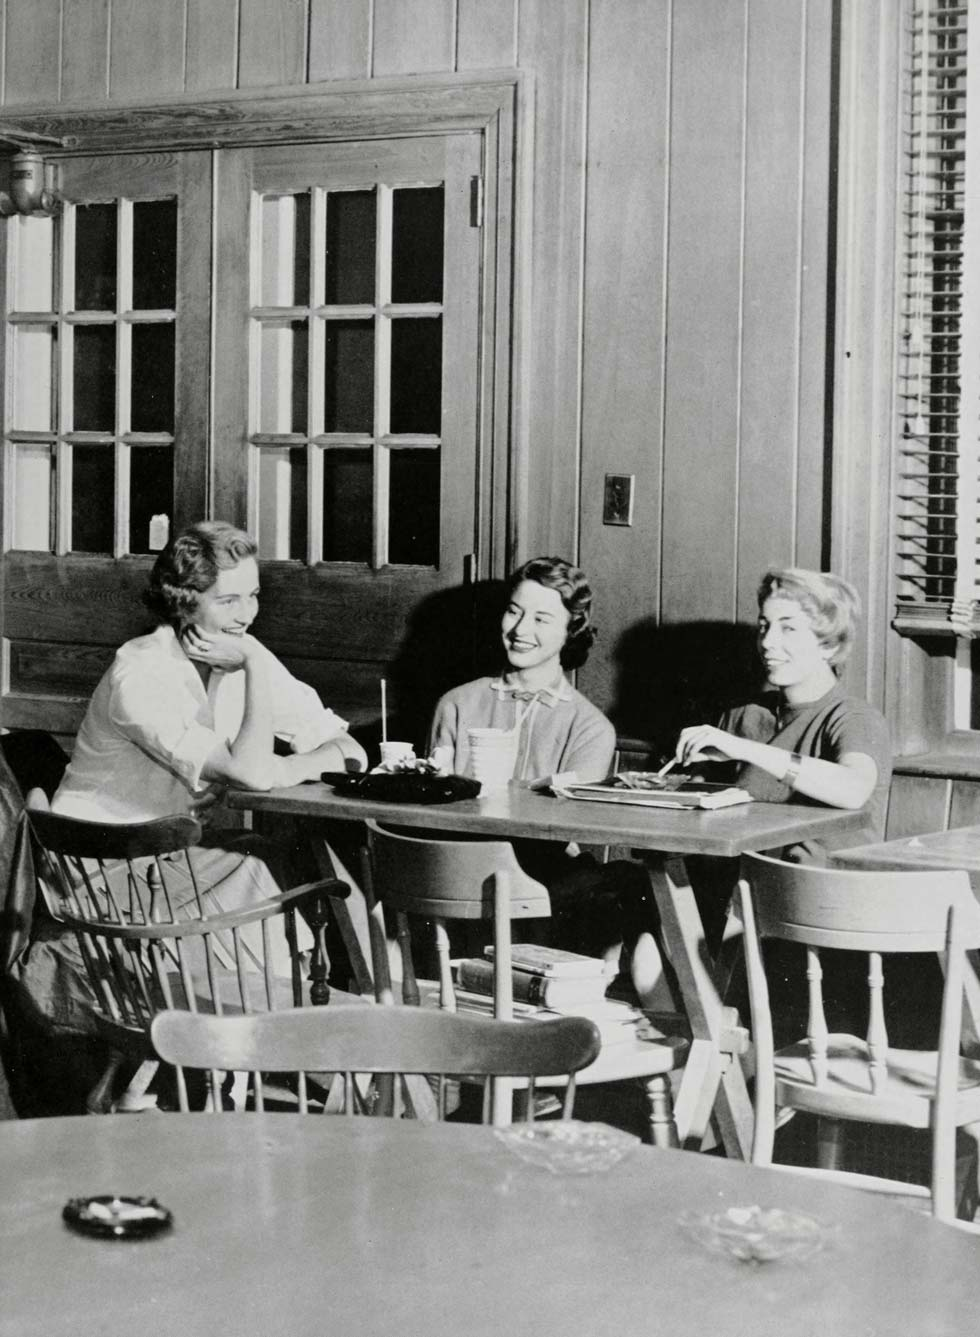 The Soda Shop, a regular gathering spot for students. The building is now the Faculty Center.